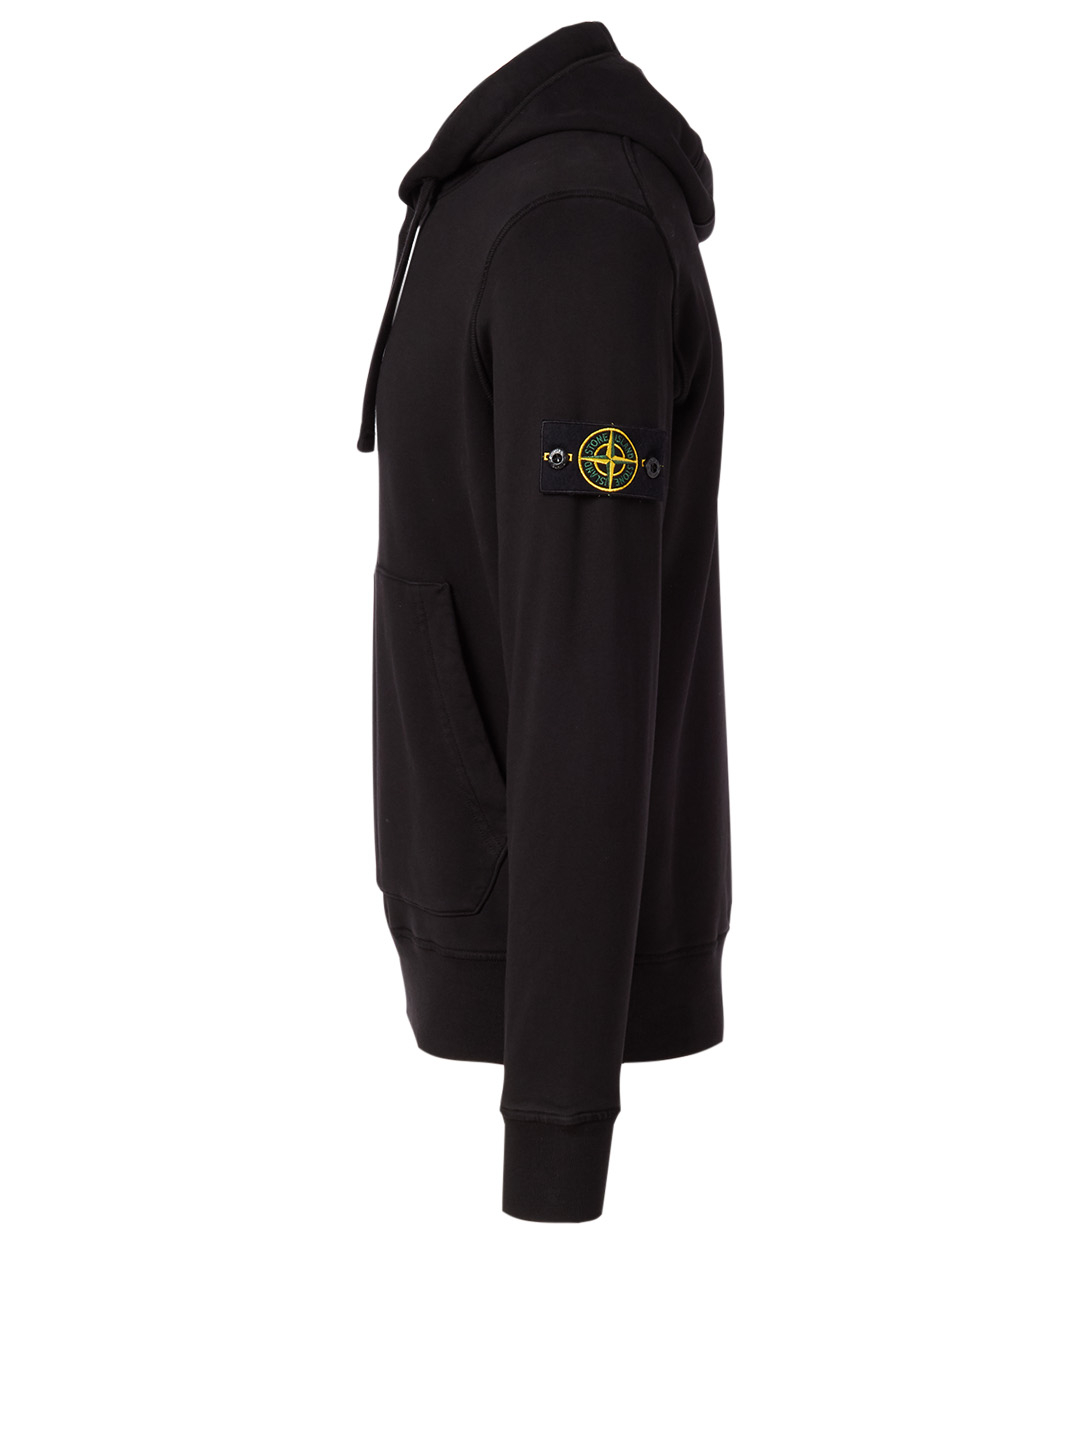 STONE ISLAND Cotton Hoodie Men's Black